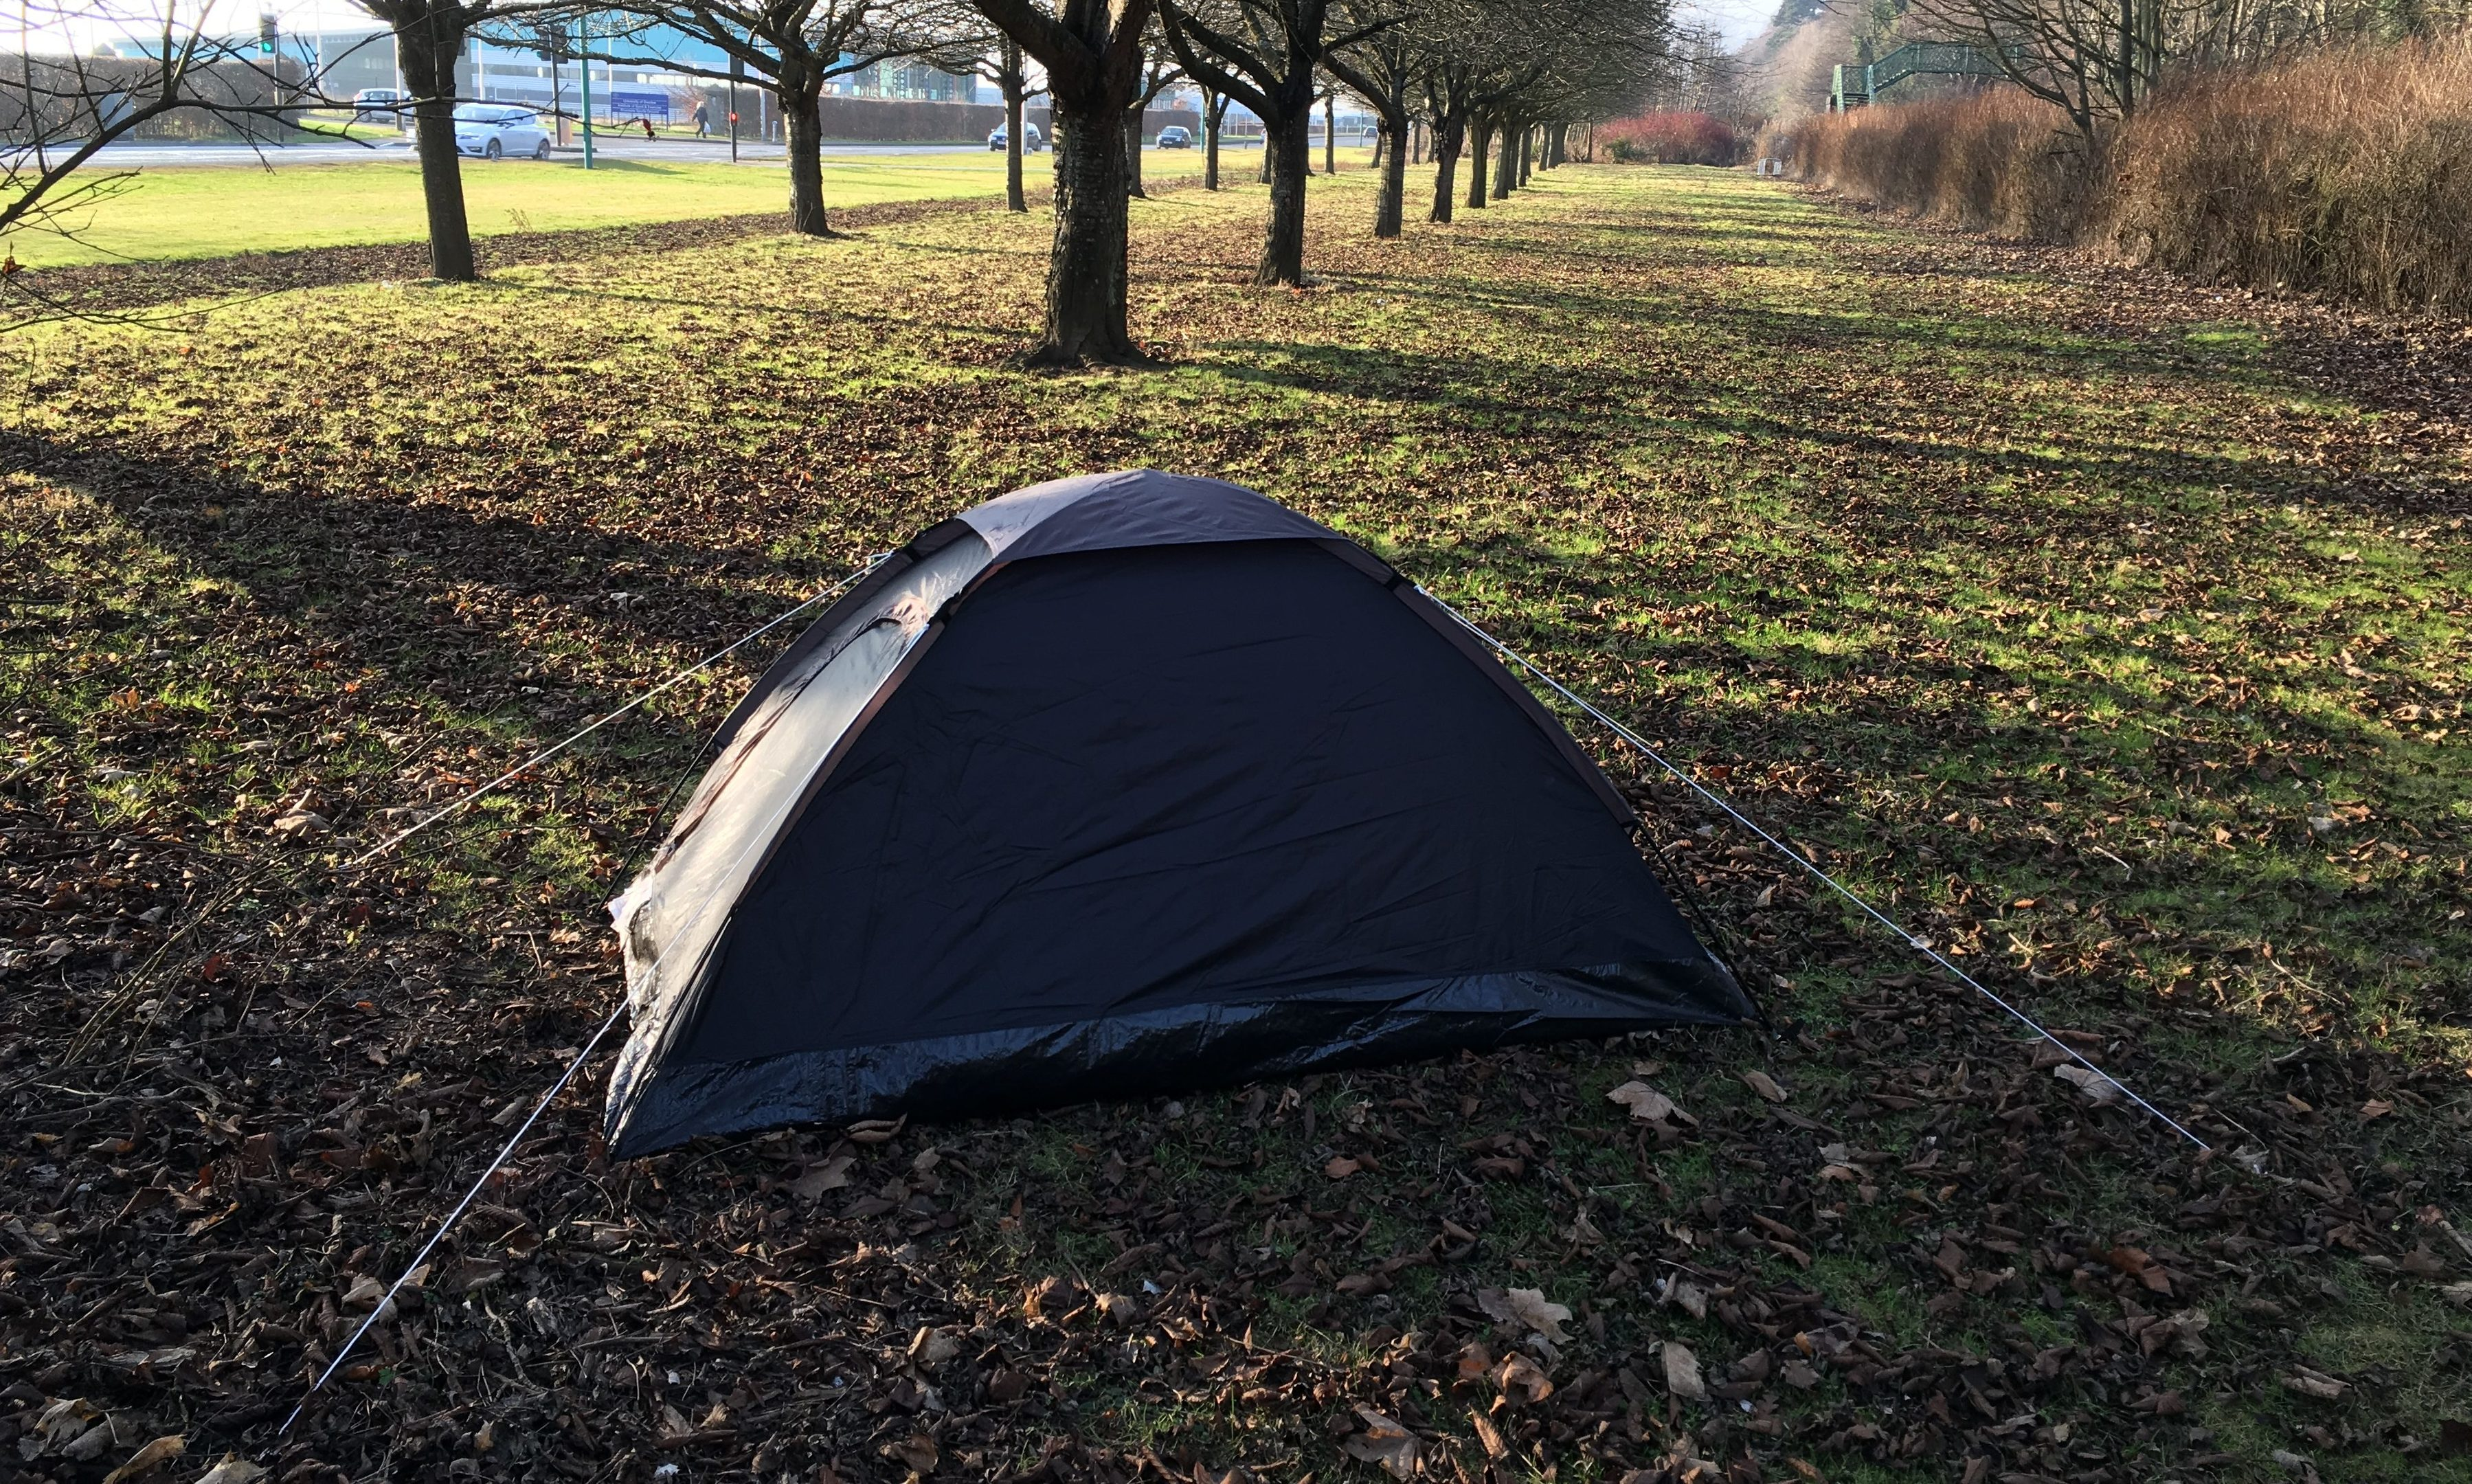 The tent was pitched alongside Riverside Drive.